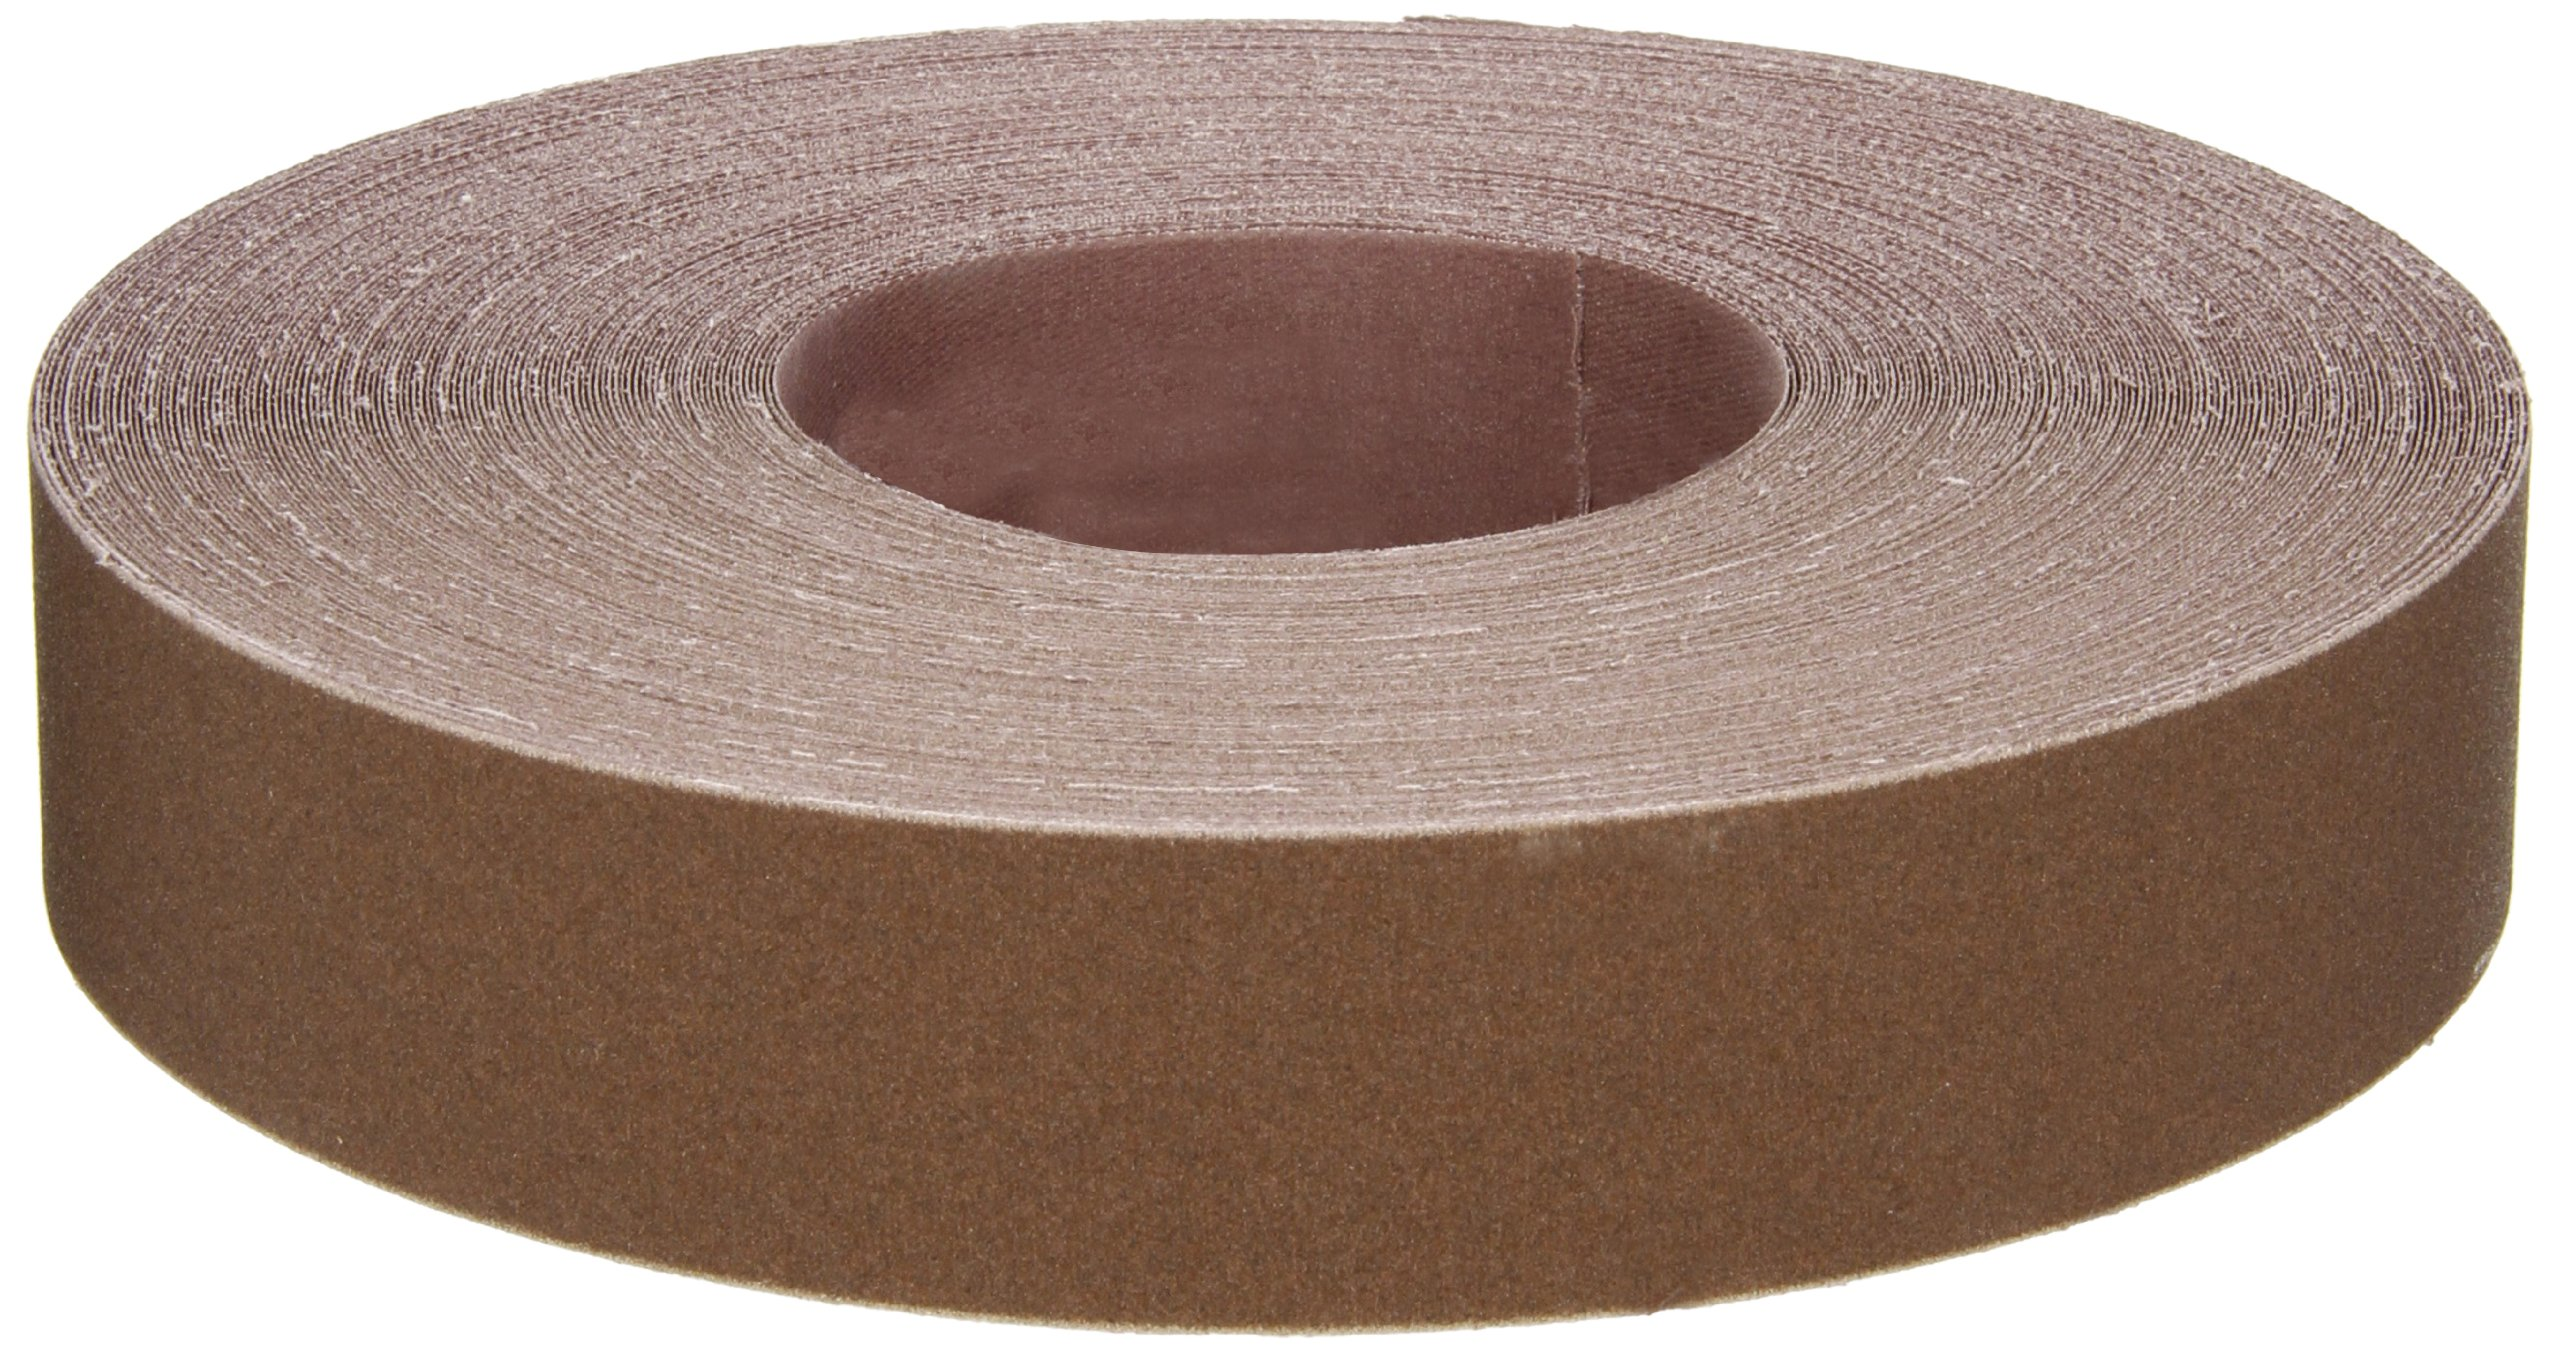 Norton K225 Metalite Abrasive Roll, Cloth Backing, Aluminum Oxide, 1-1/2'' Width x 50yd Length, Grit P180 (Pack of 5)